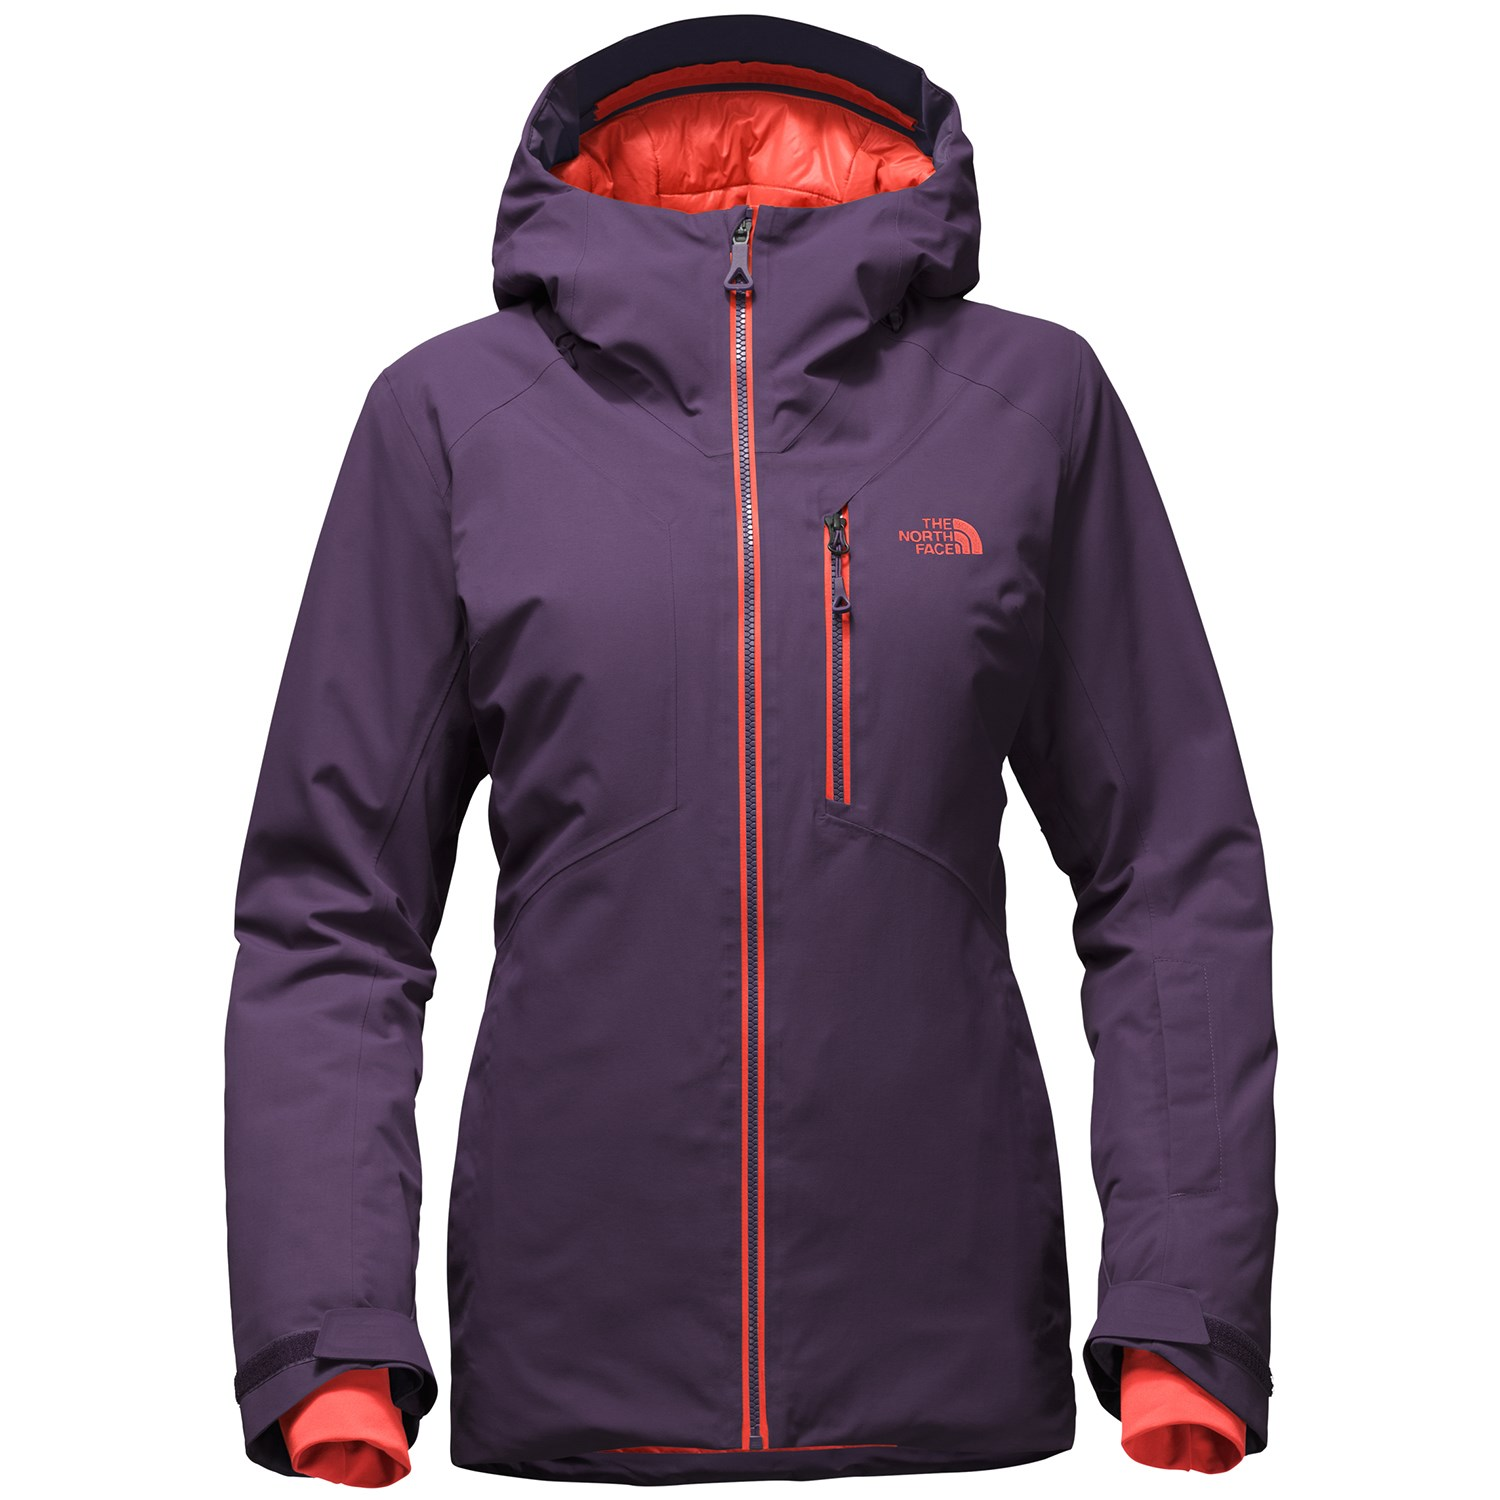 1b38355fb878a6 the-north-face-lostrail-insulated-jacket-women-s-dark-eggplant.jpg